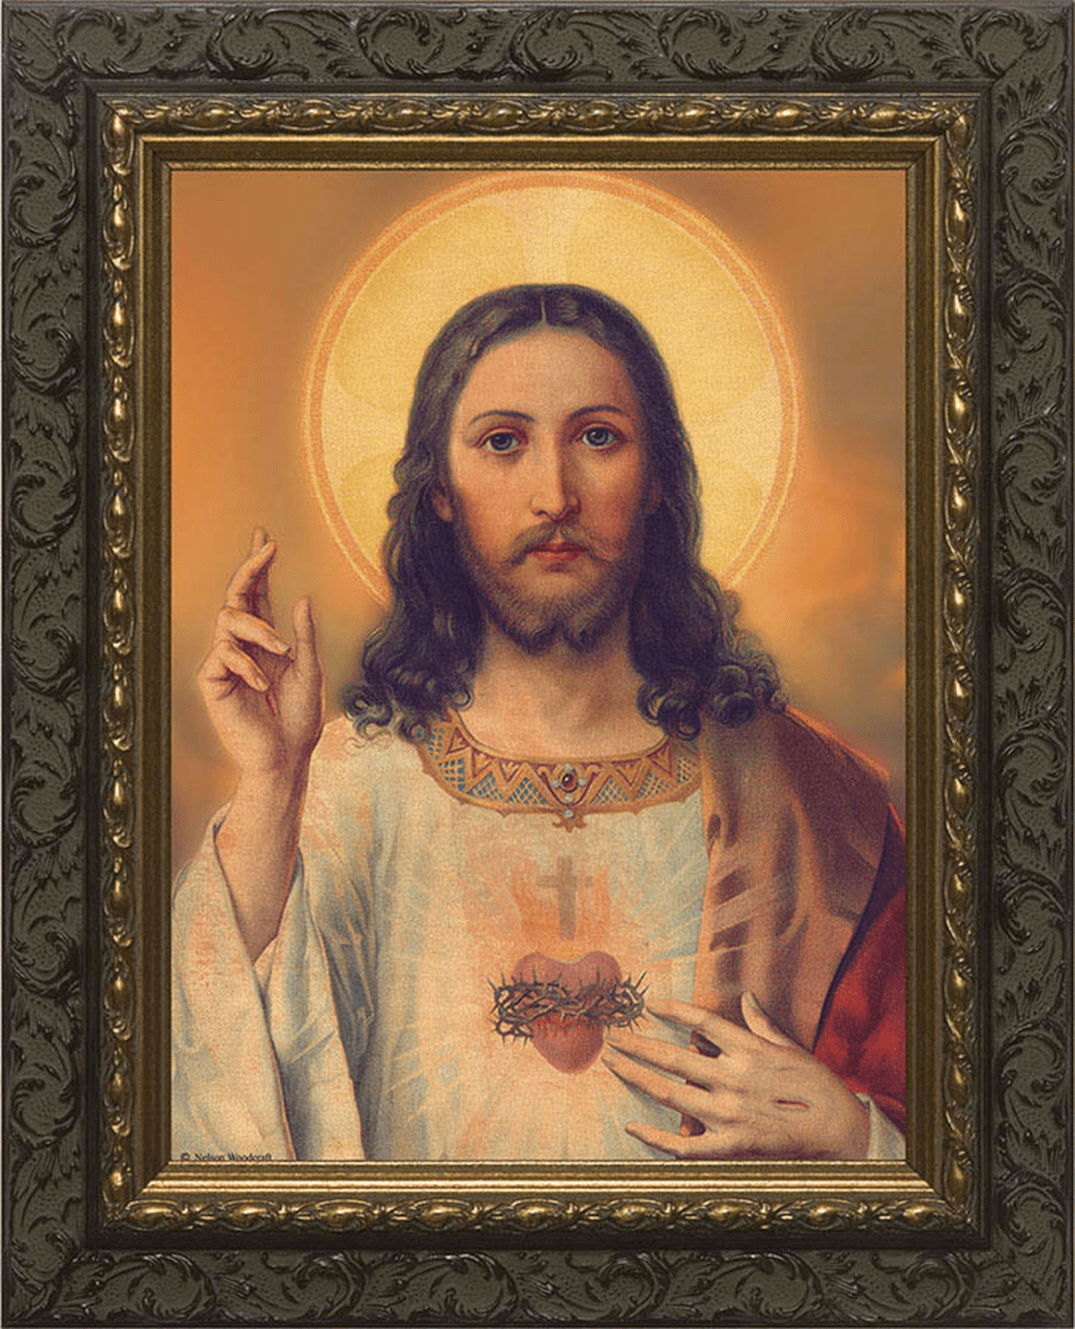 Nelsons Gifts Sacred Heart of Jesus Ornate Dark Framed Wall Art Picture